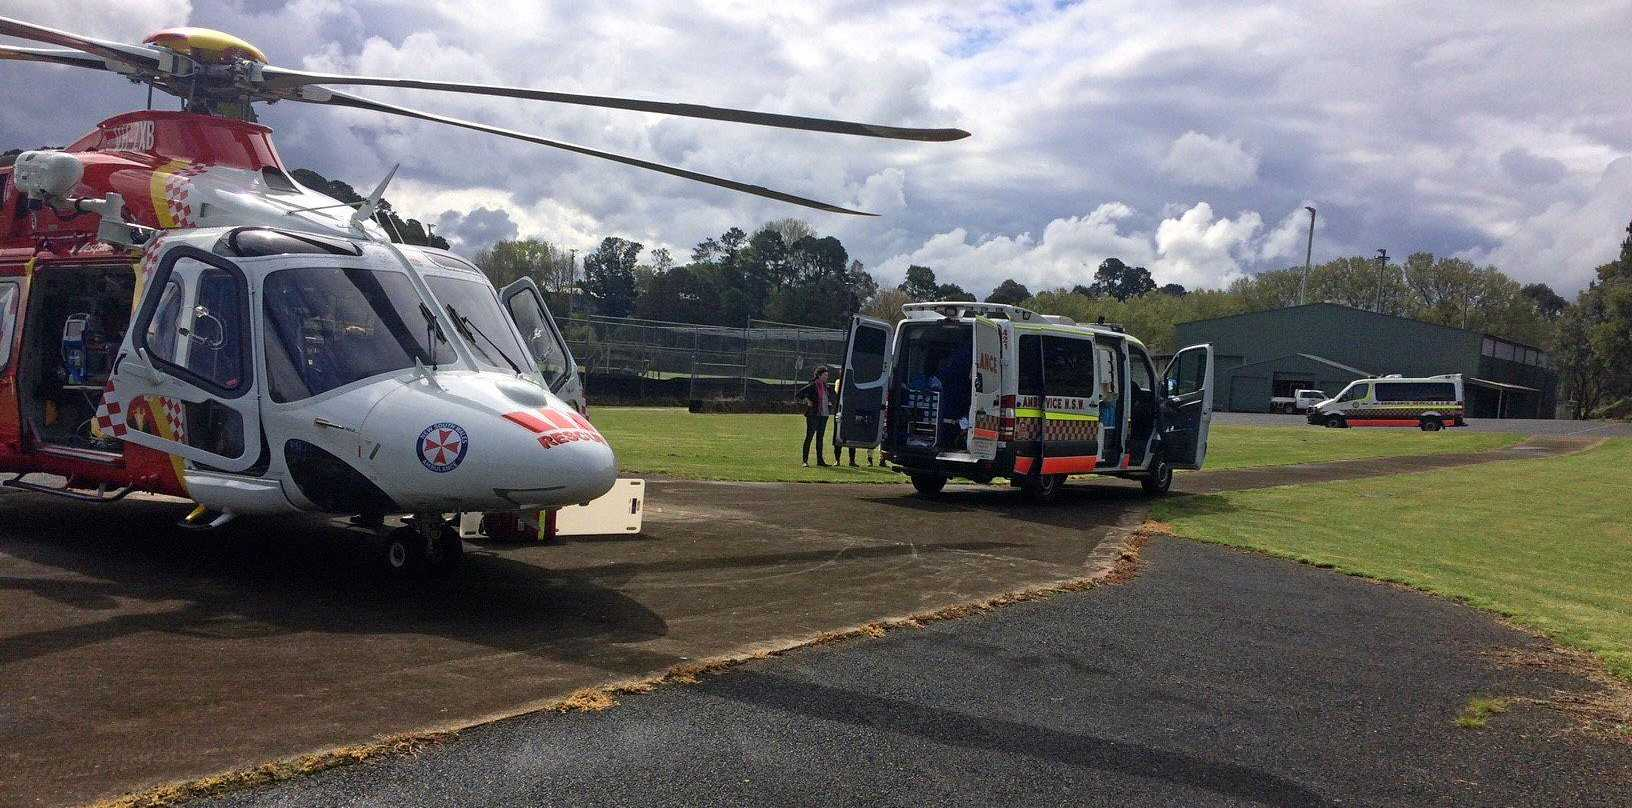 A 13-year-old girl has been transported to hospital suffering a serious head injury after falling from her horse.